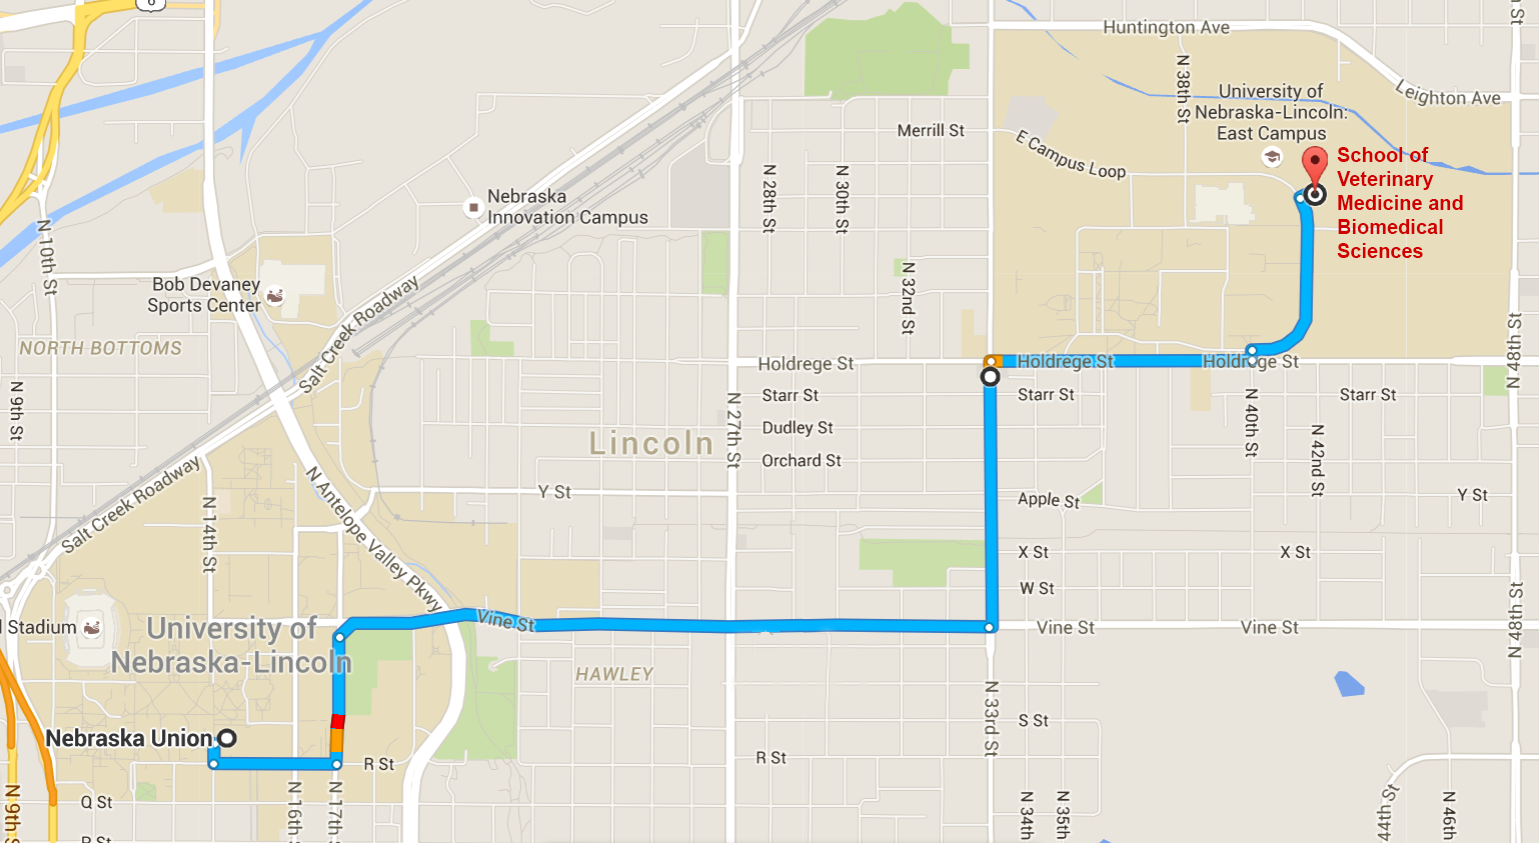 map showing driving directions from the universitys city campus to school of veterinary medicine and biomedical